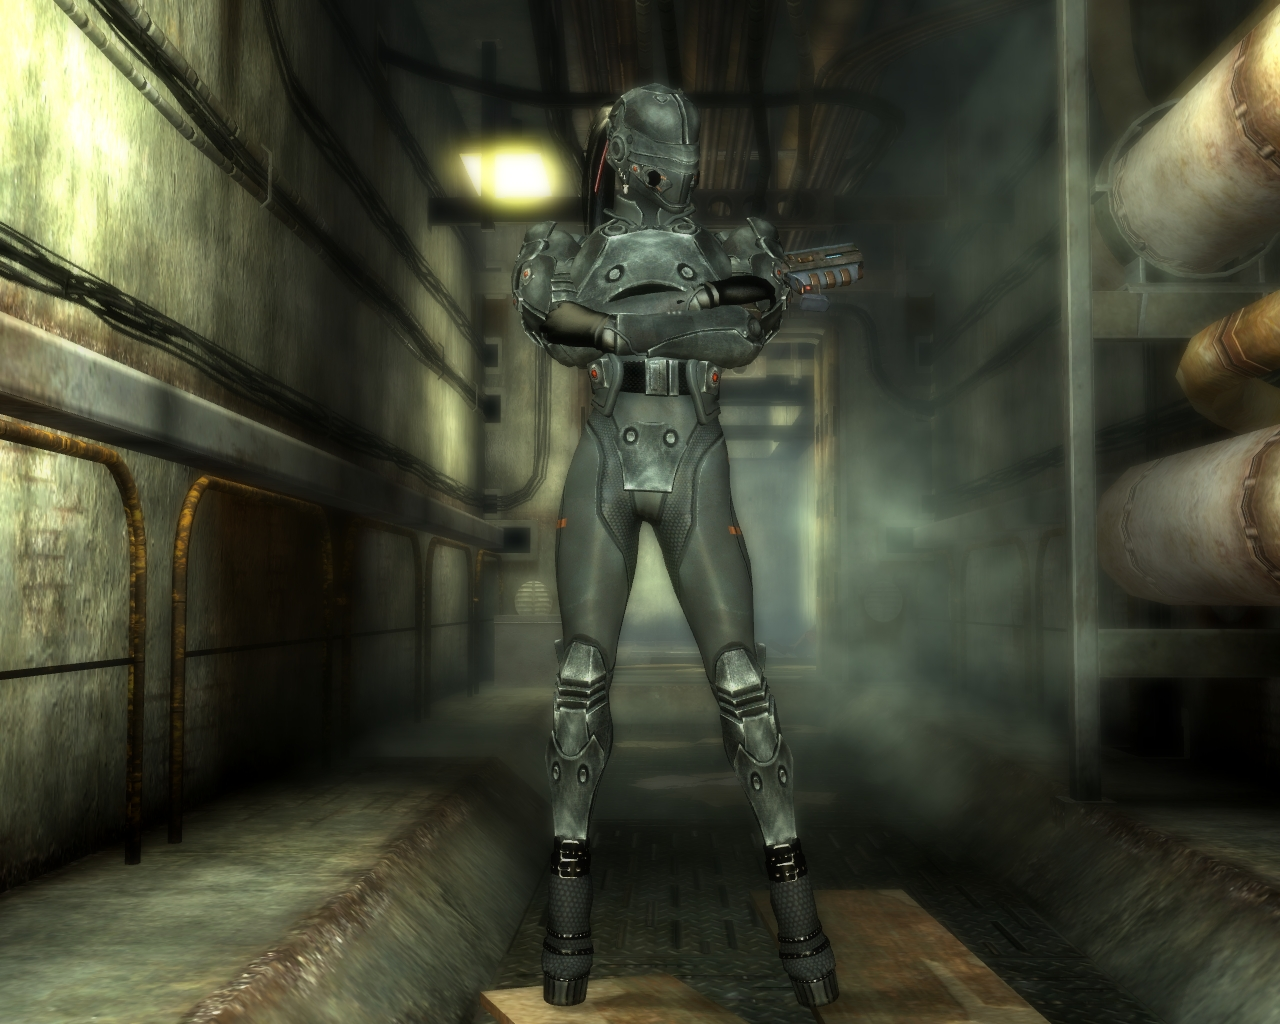 Dunwich at Fallout3 Nexus - mods and community on fallout 3 dunwich ruins, fallout journal, fallout 3 dunwich bobblehead, subway under capitol building, fallout 3 chryslus building, fallout dunwich horror,